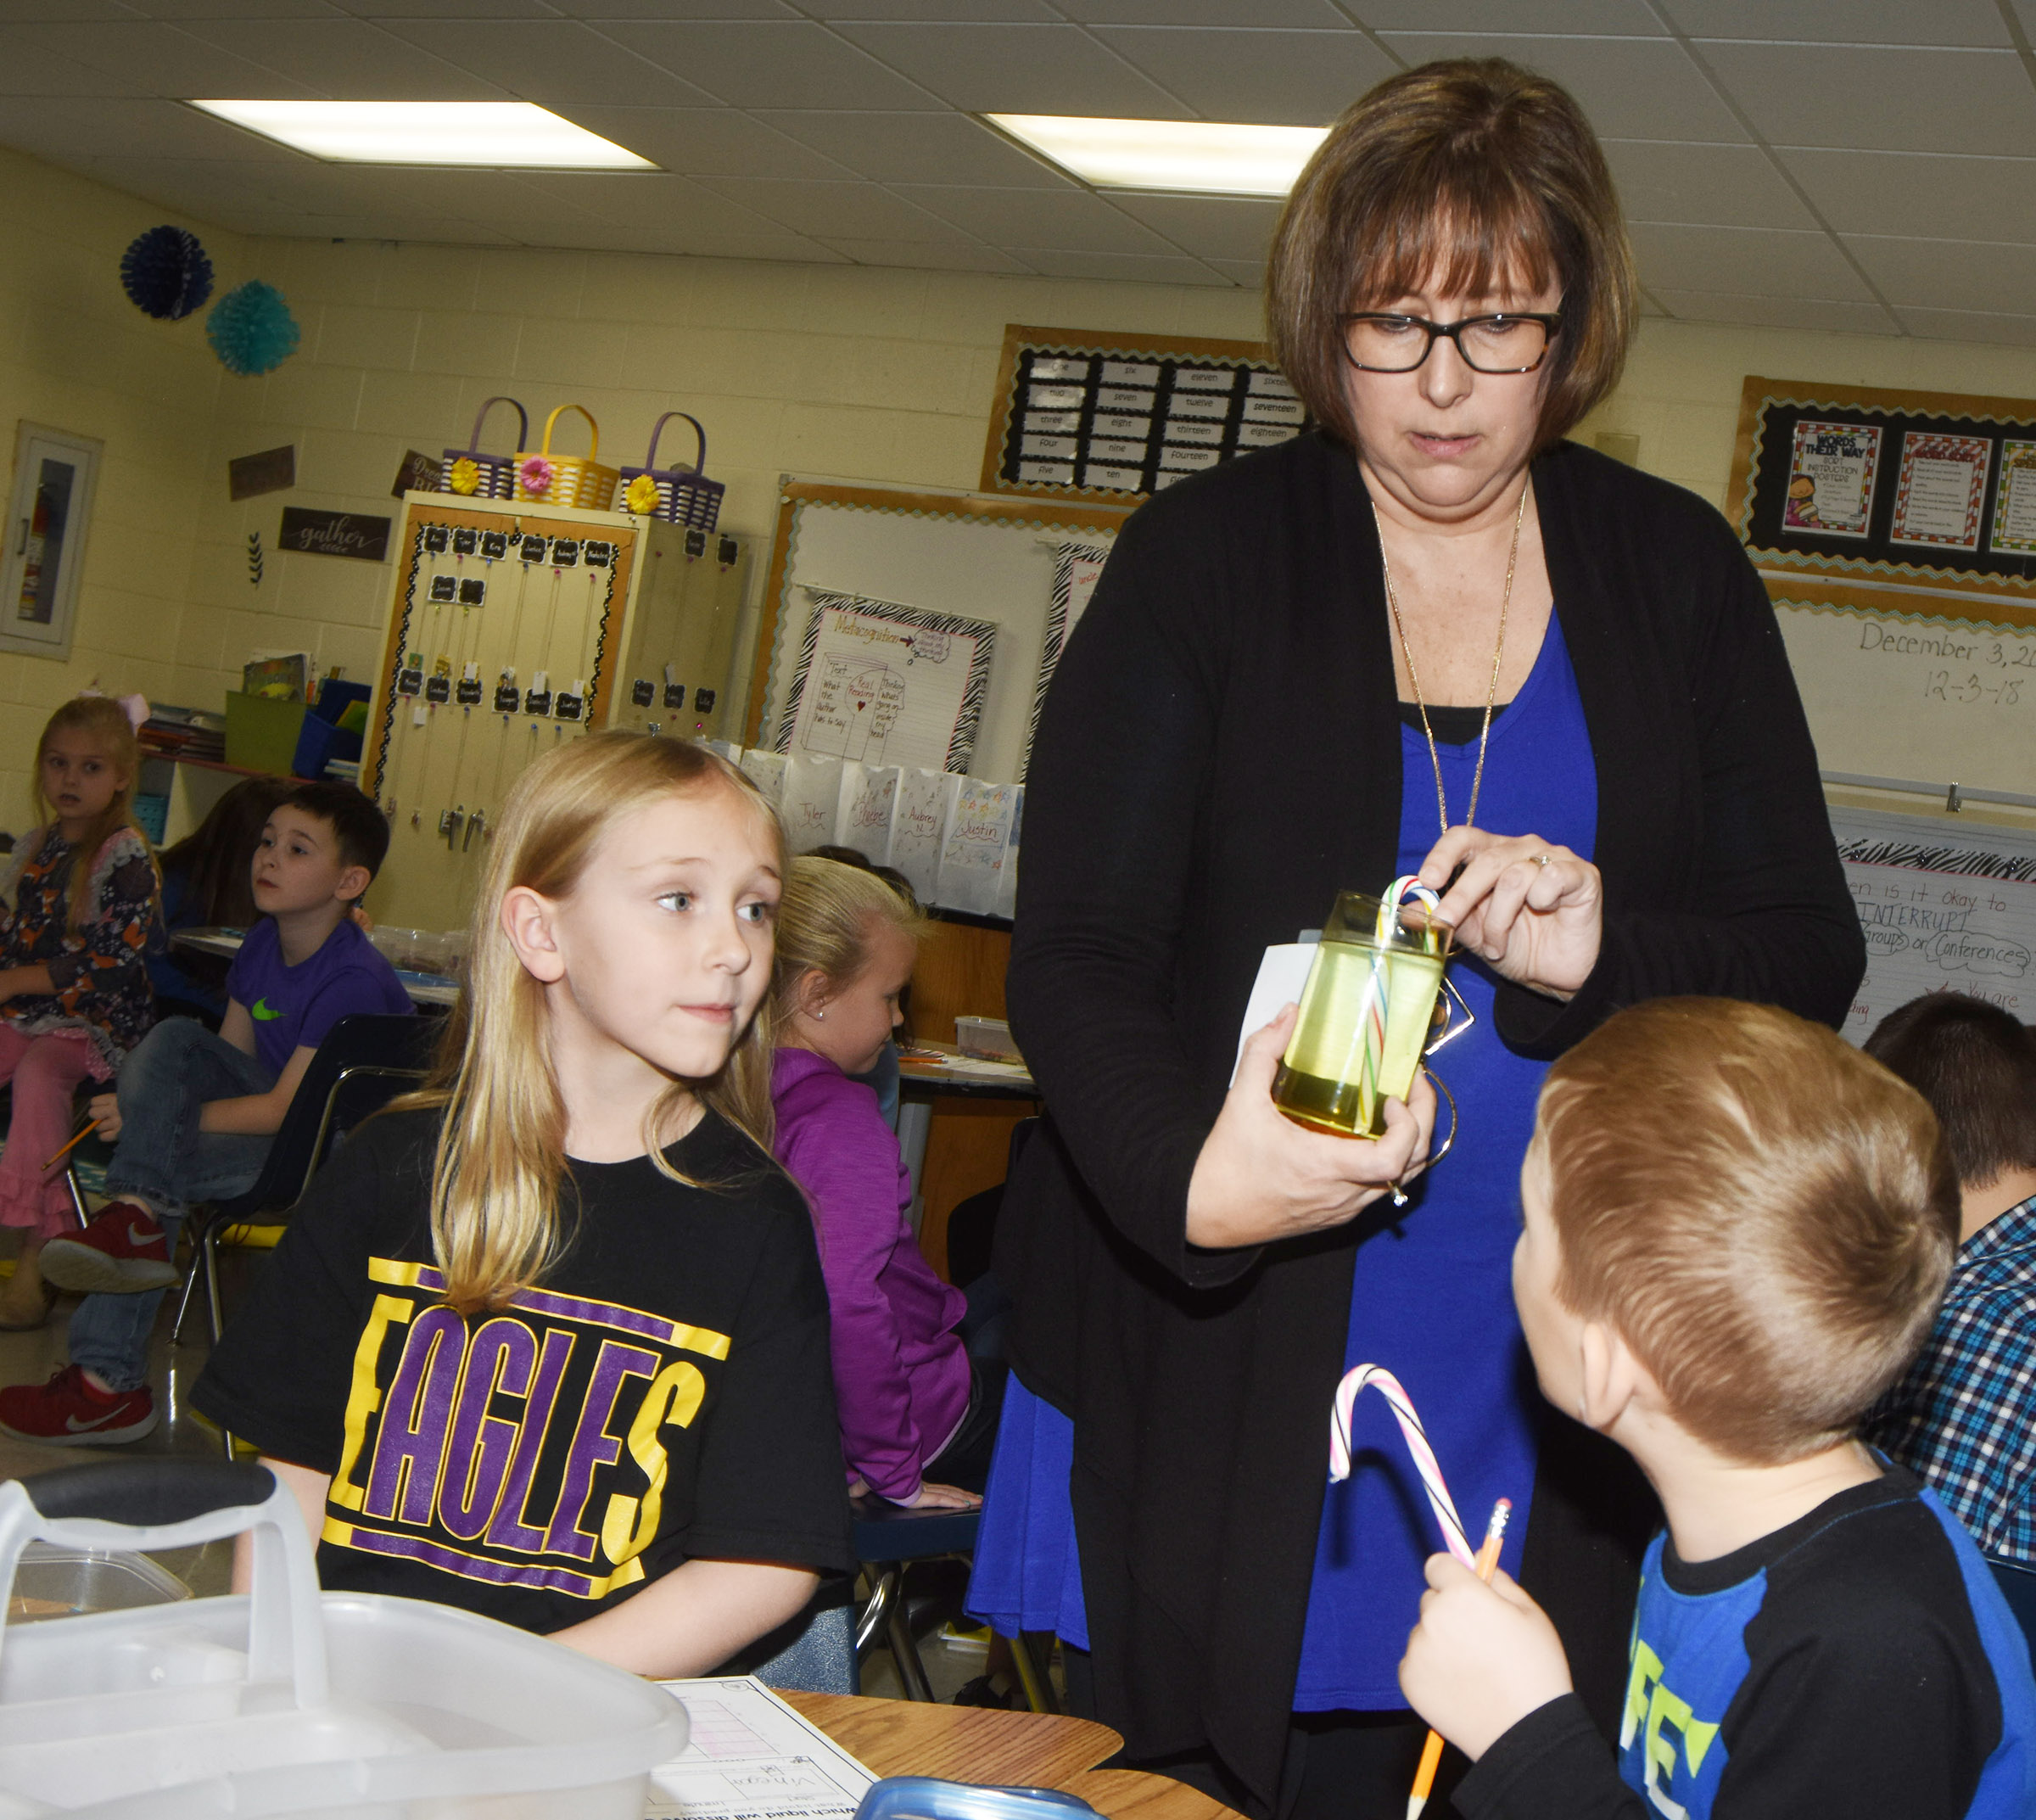 CES second-grade teacher Lynne Horn shows her students a candy cane in water to observe the reaction. Pictured are LeeAnna Garvin and Mason Edwards.